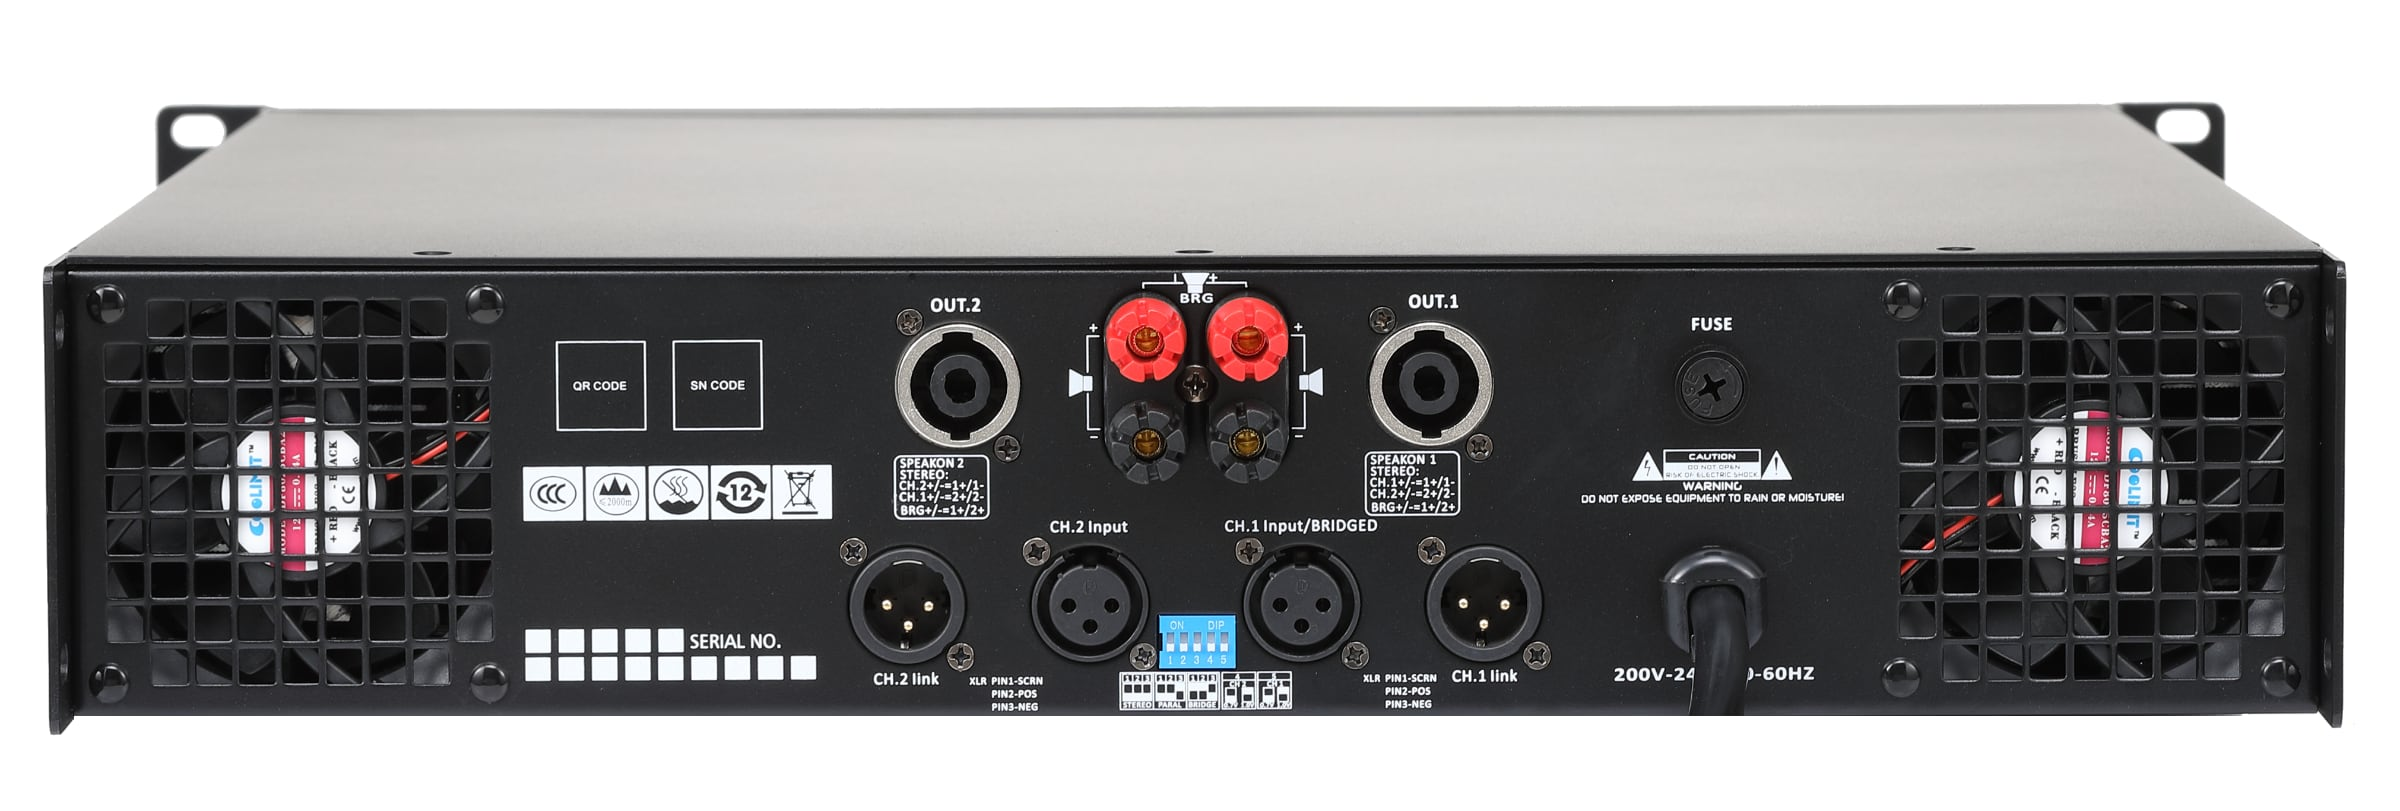 Công suất AAP DX-3002